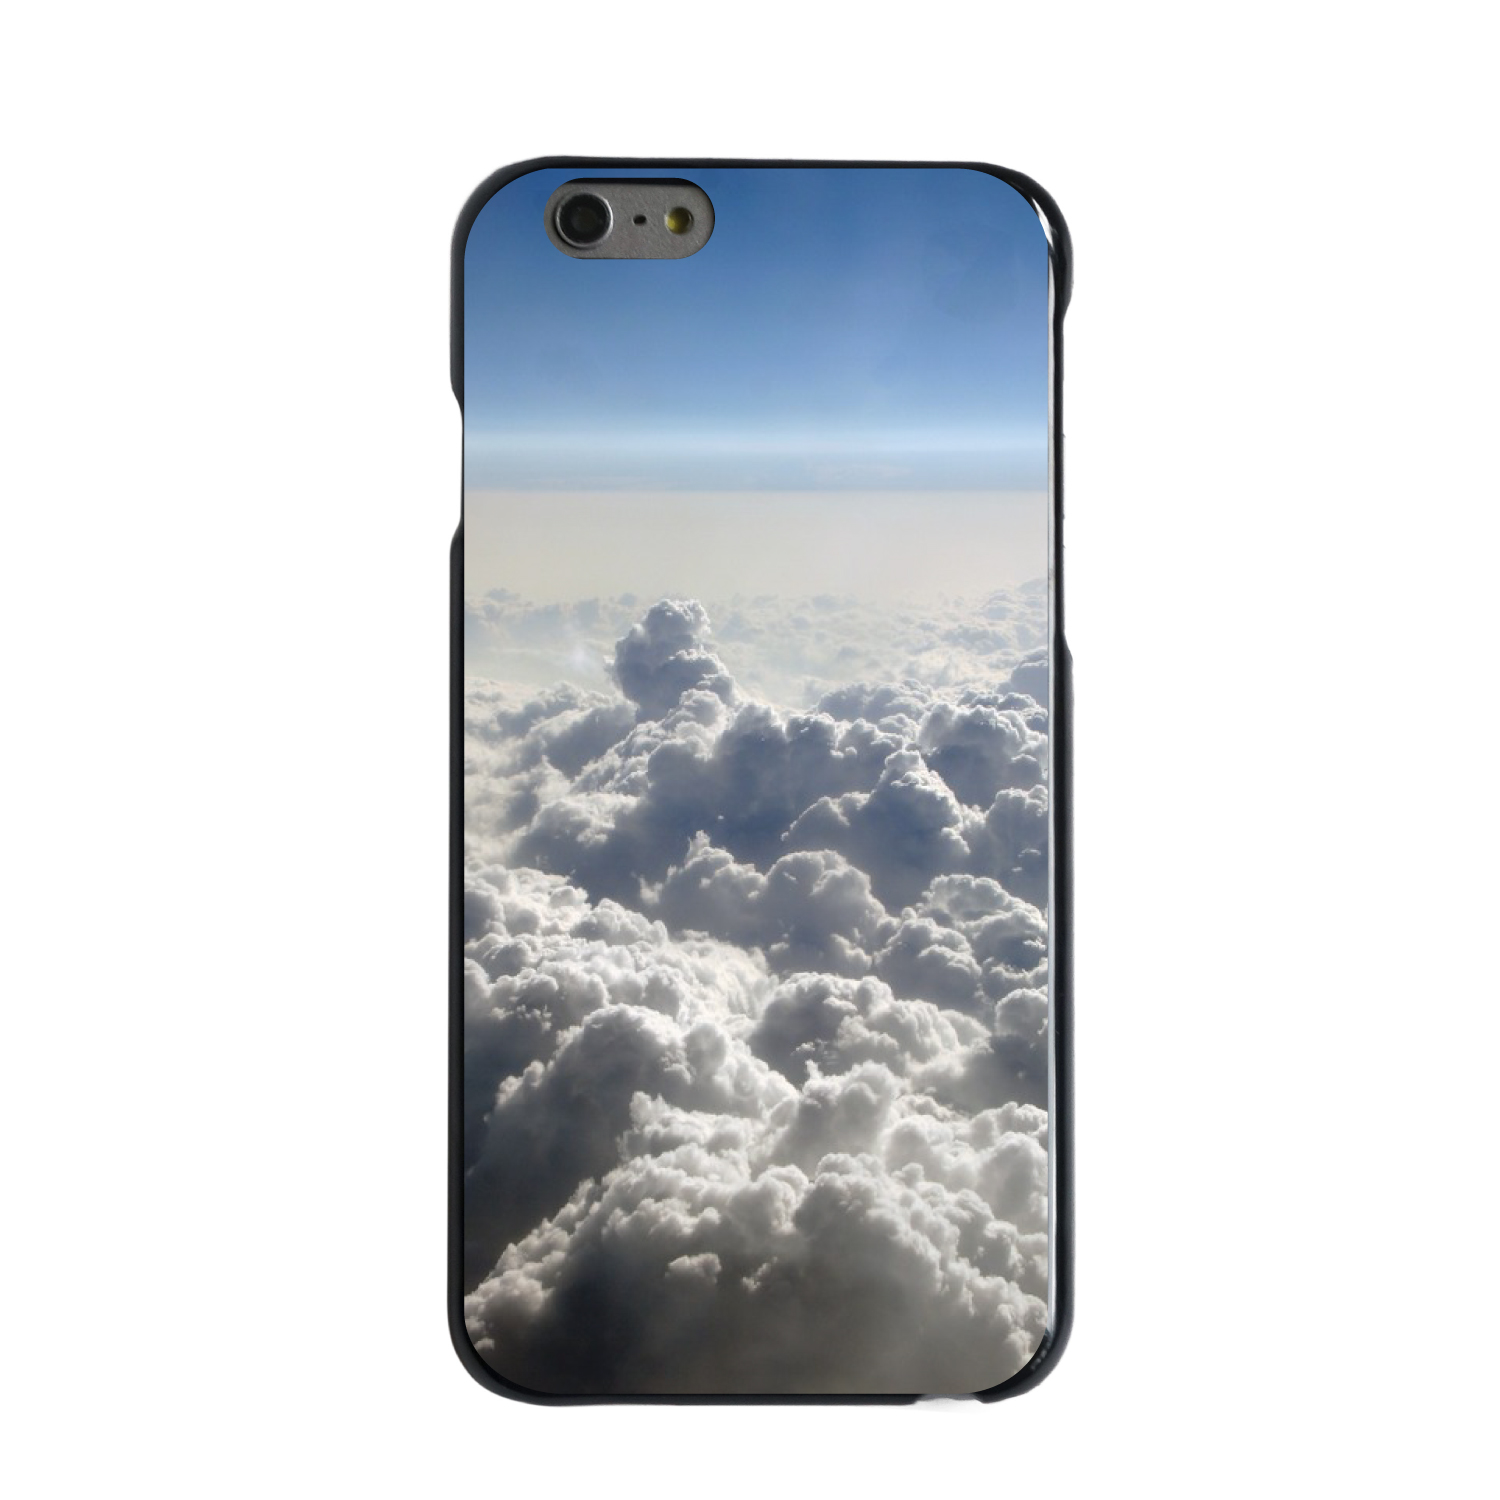 "CUSTOM Black Hard Plastic Snap-On Case for Apple iPhone 6 PLUS / 6S PLUS (5.5"" Screen) - Blue Sky Above Clouds"